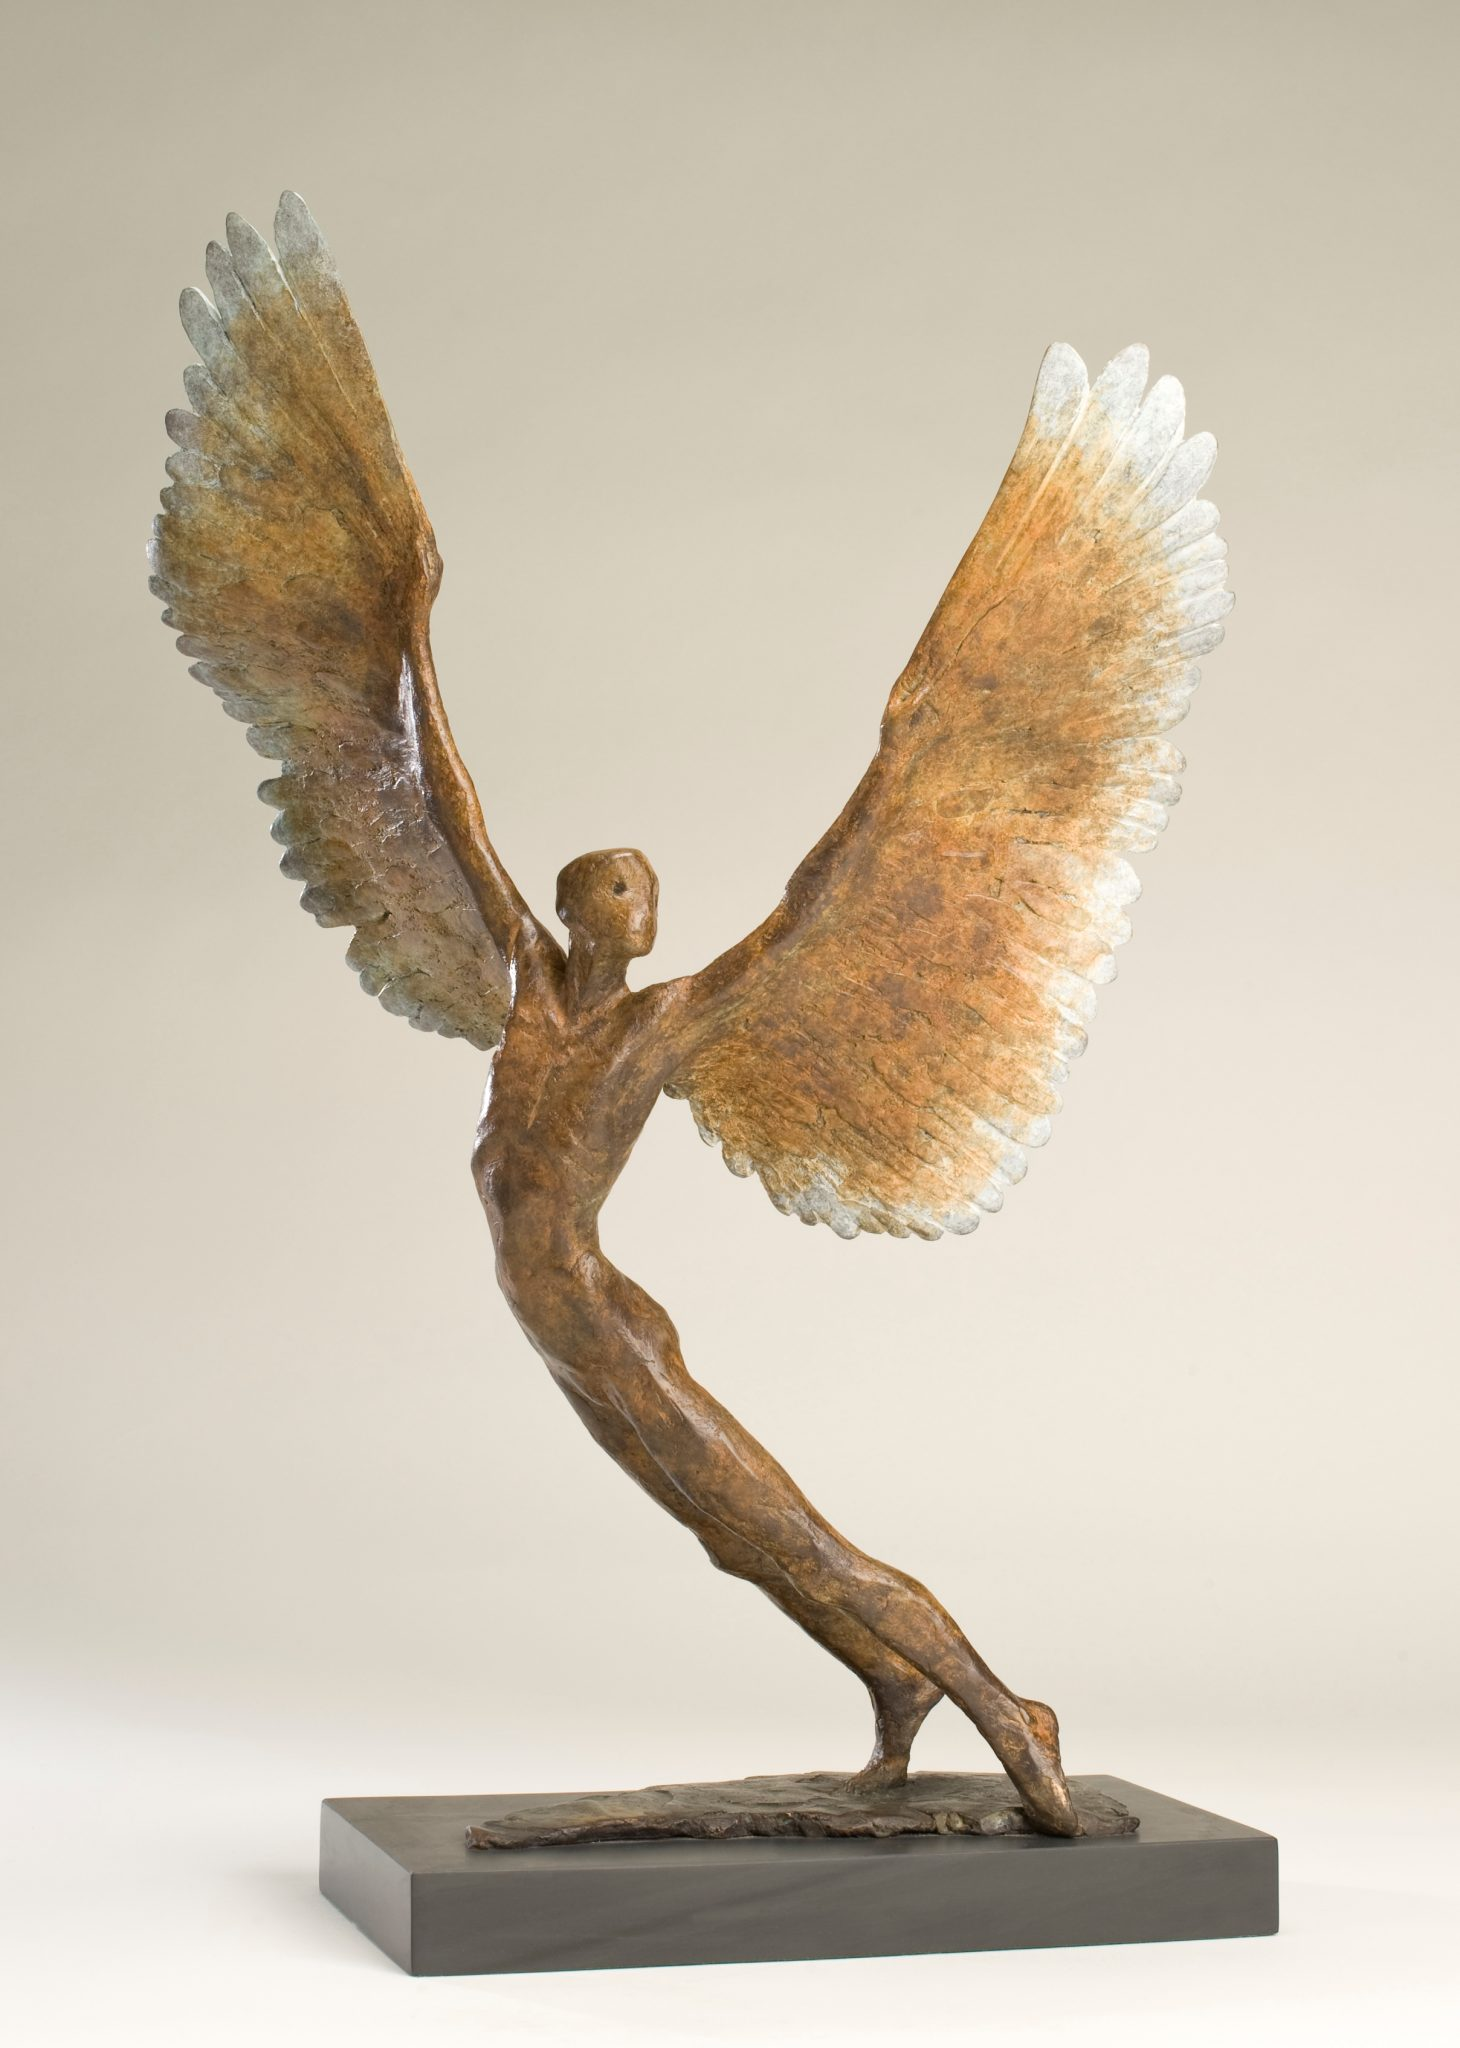 Bronze figurative sculpture of Icarus